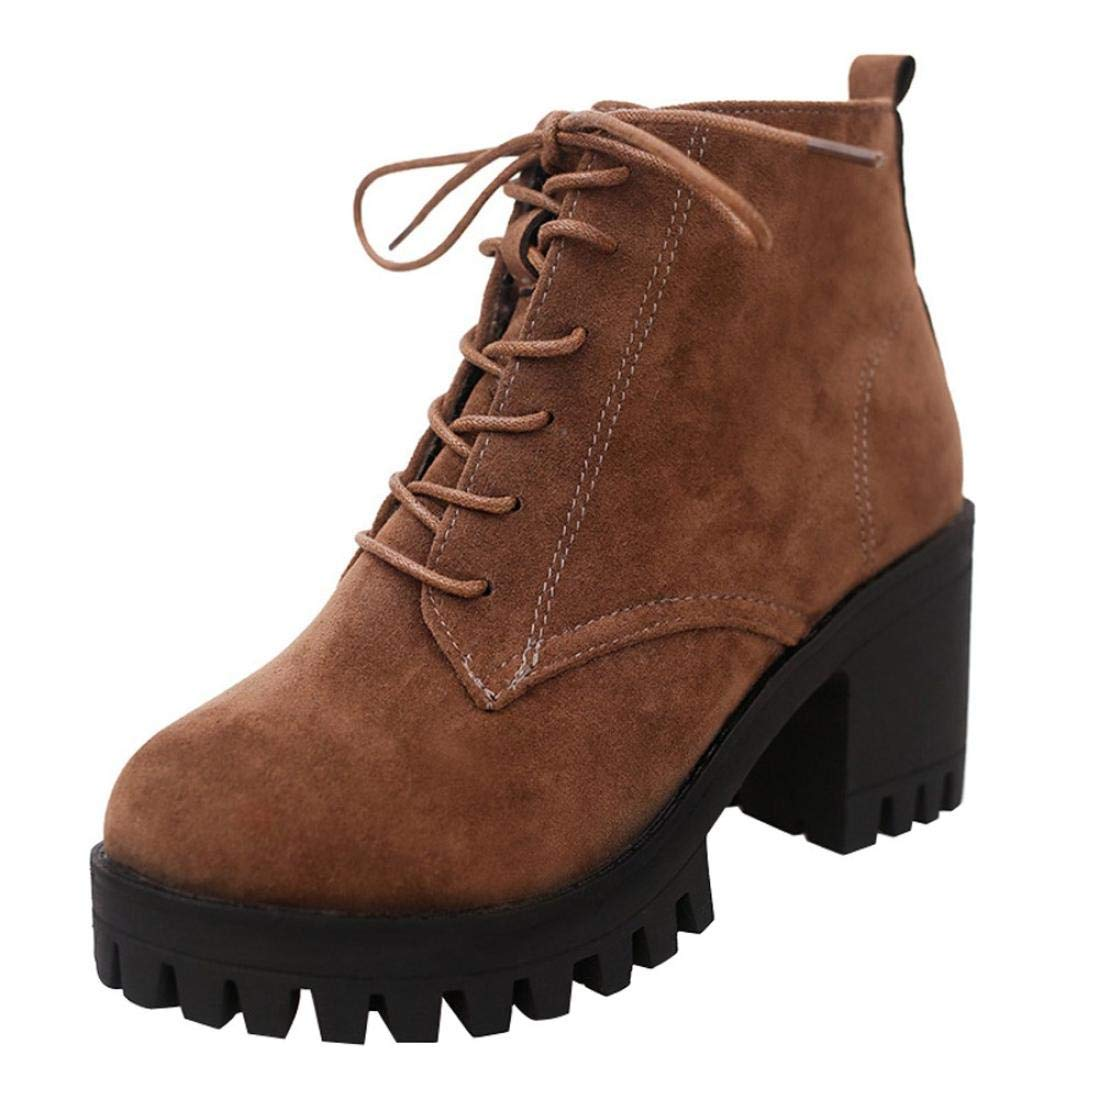 haoricu Winter Clearance Women High Heel Lace up Martin Ankle Boots Ladies Platform Shoes